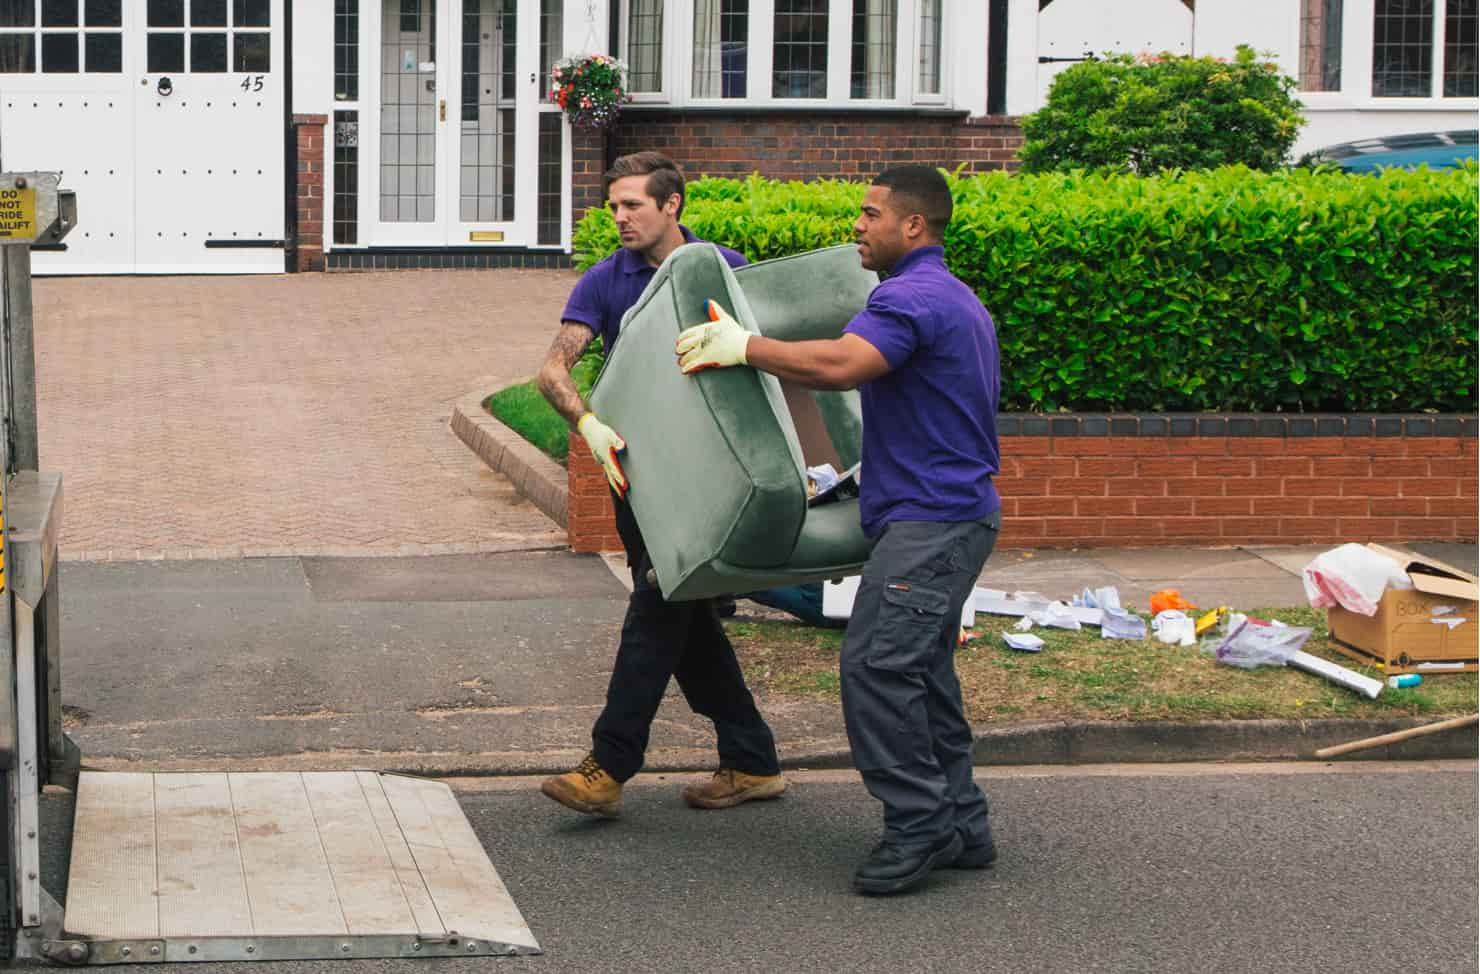 waste operative clearing waste